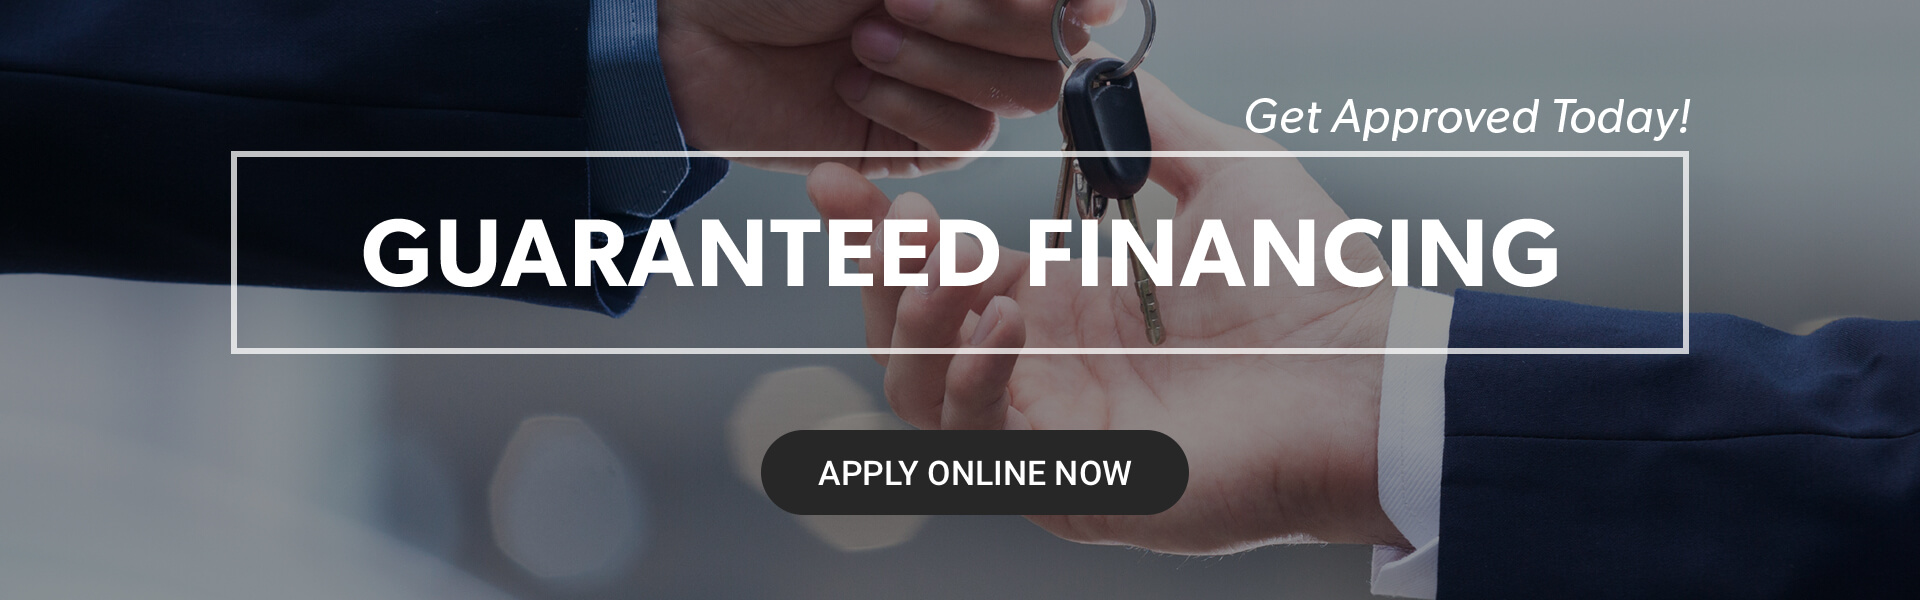 Guaranteed Financing Apply Online Now